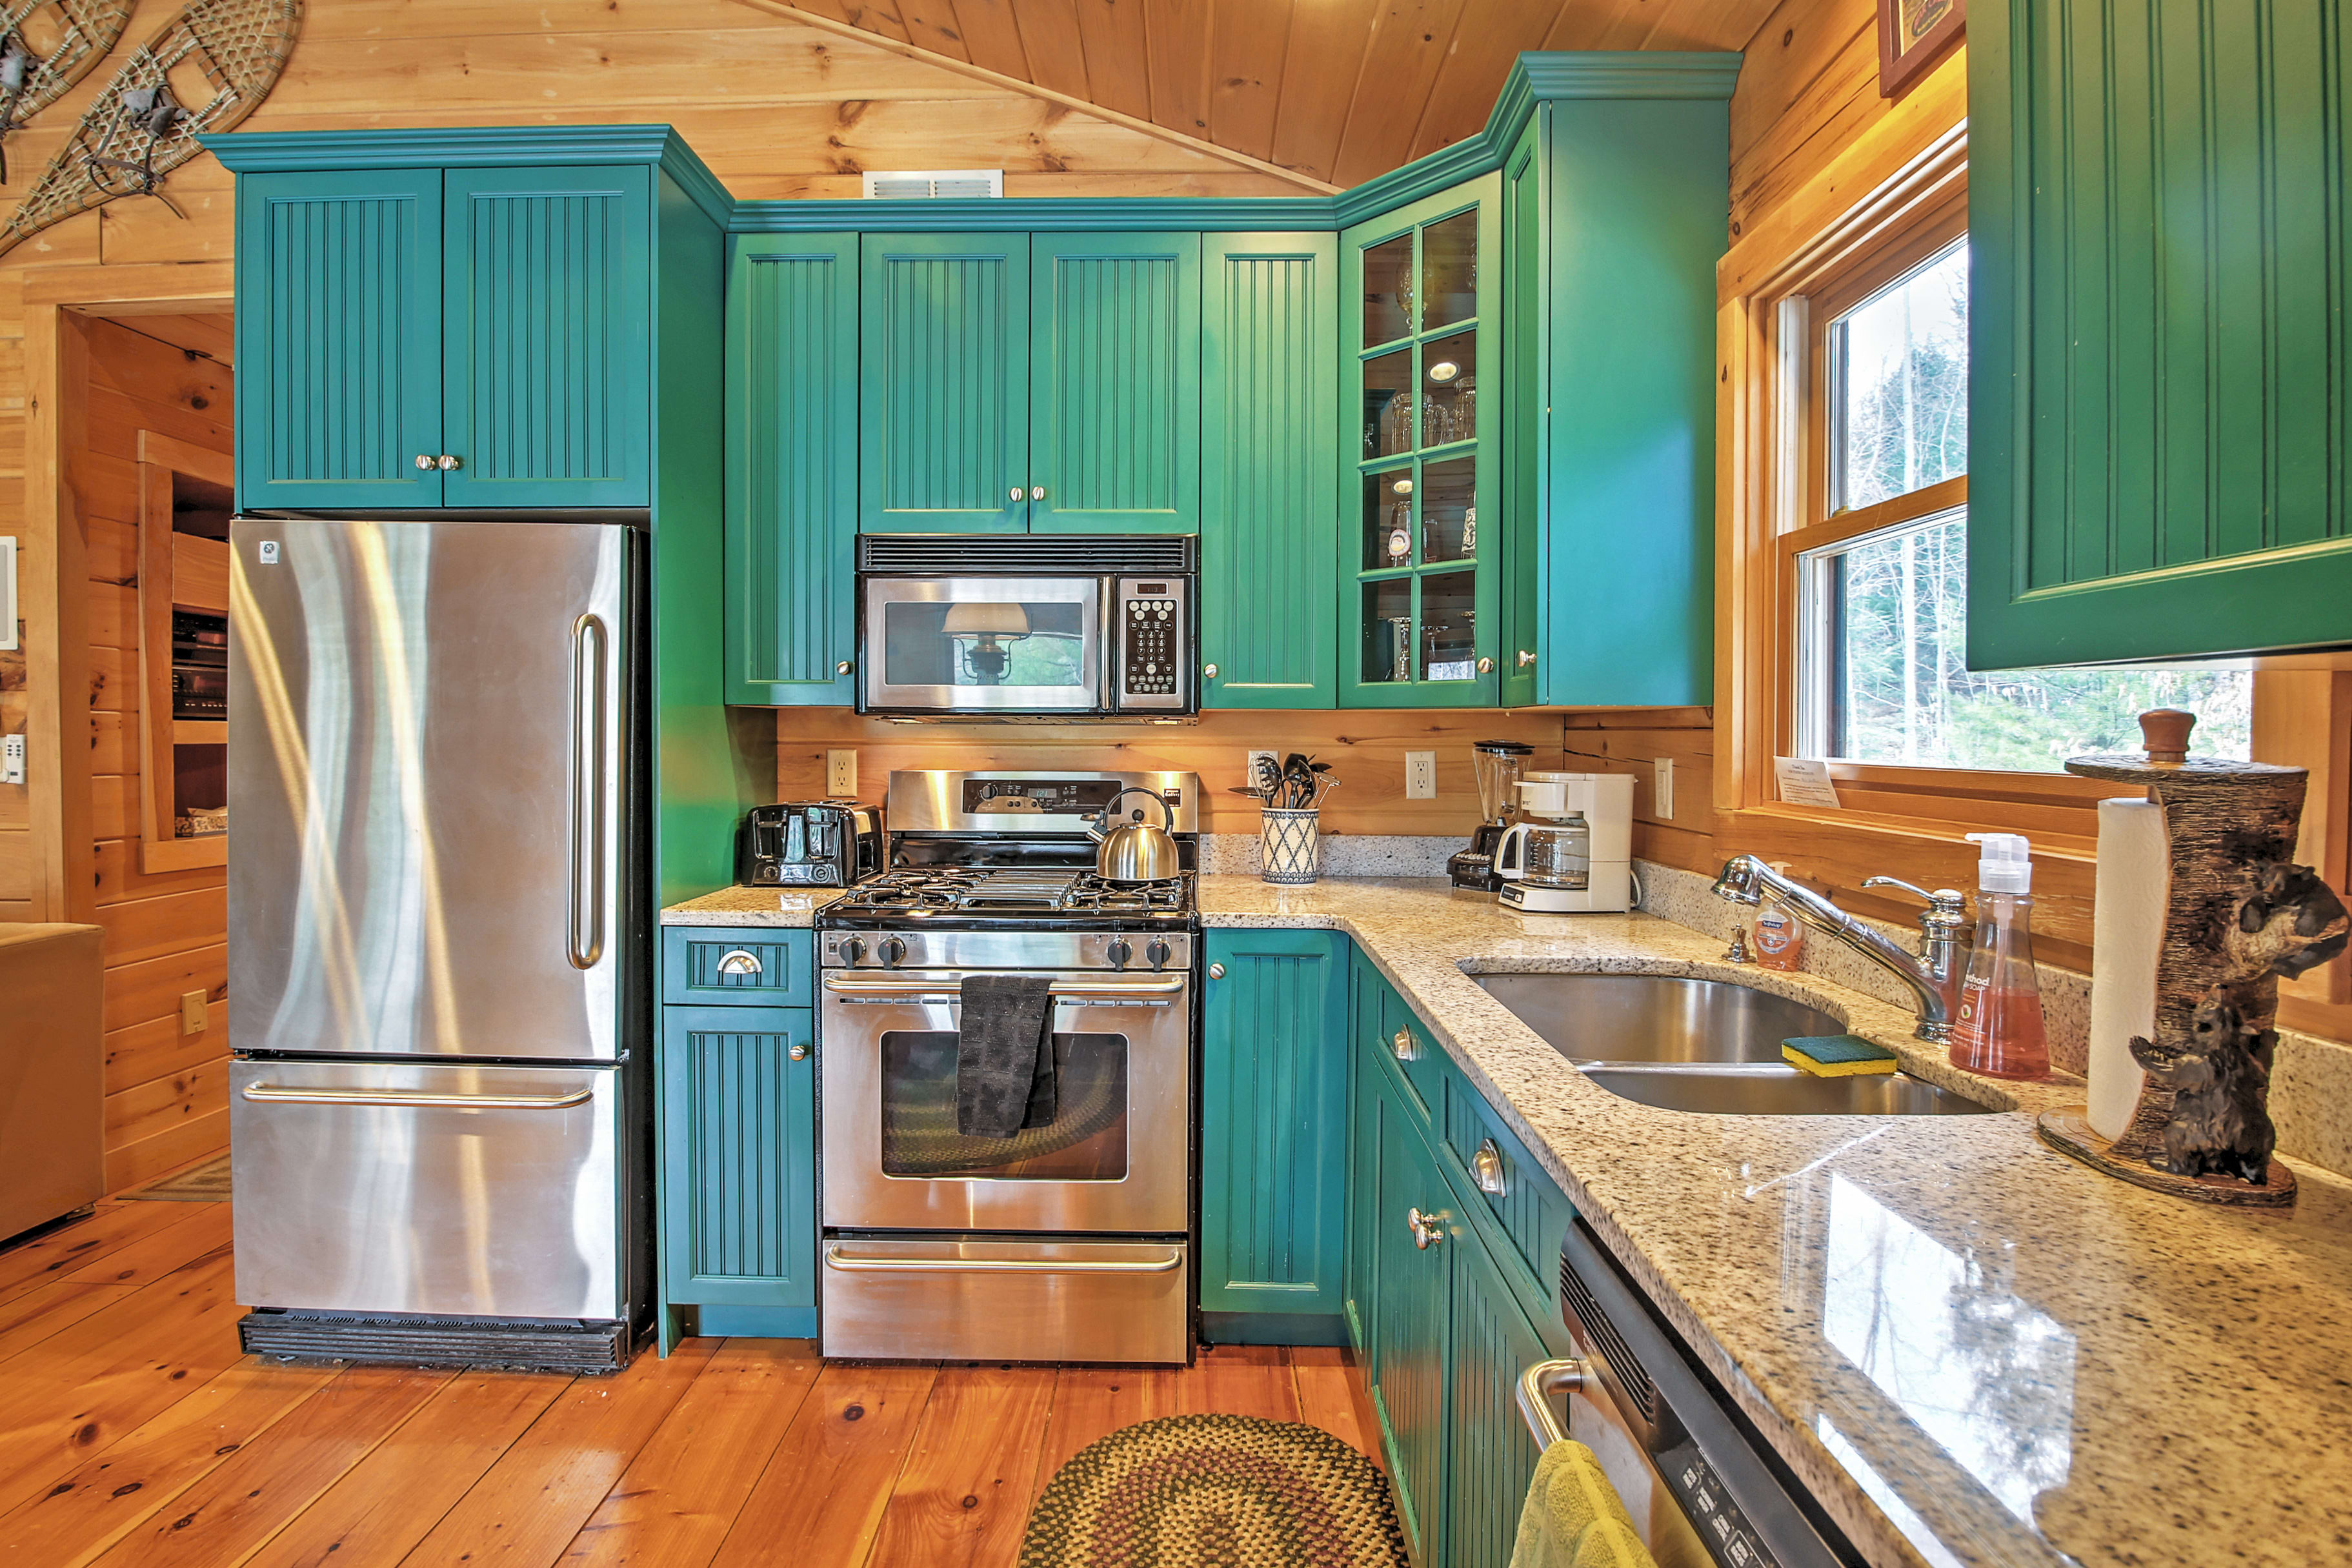 This updated kitchen is fully equipped with everything you need to cook your favorite meals.